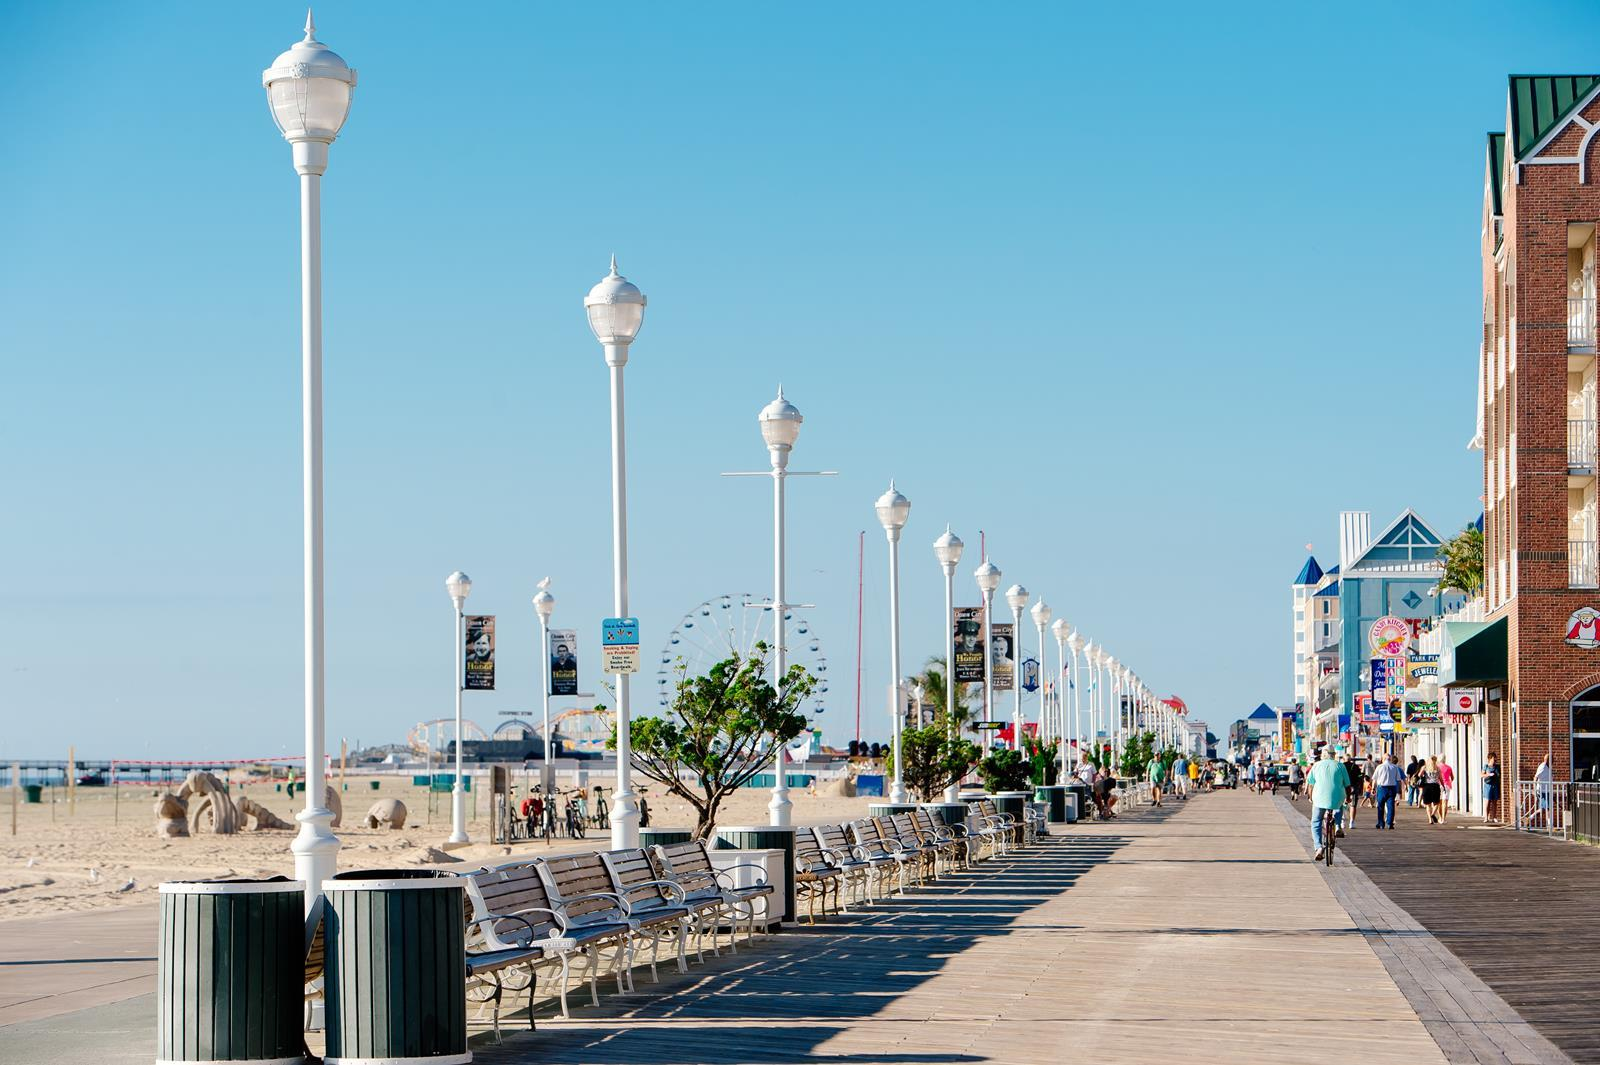 Festivals and An Award-Winning Beach Make Ocean City, Maryland, a Popular Reunion Town